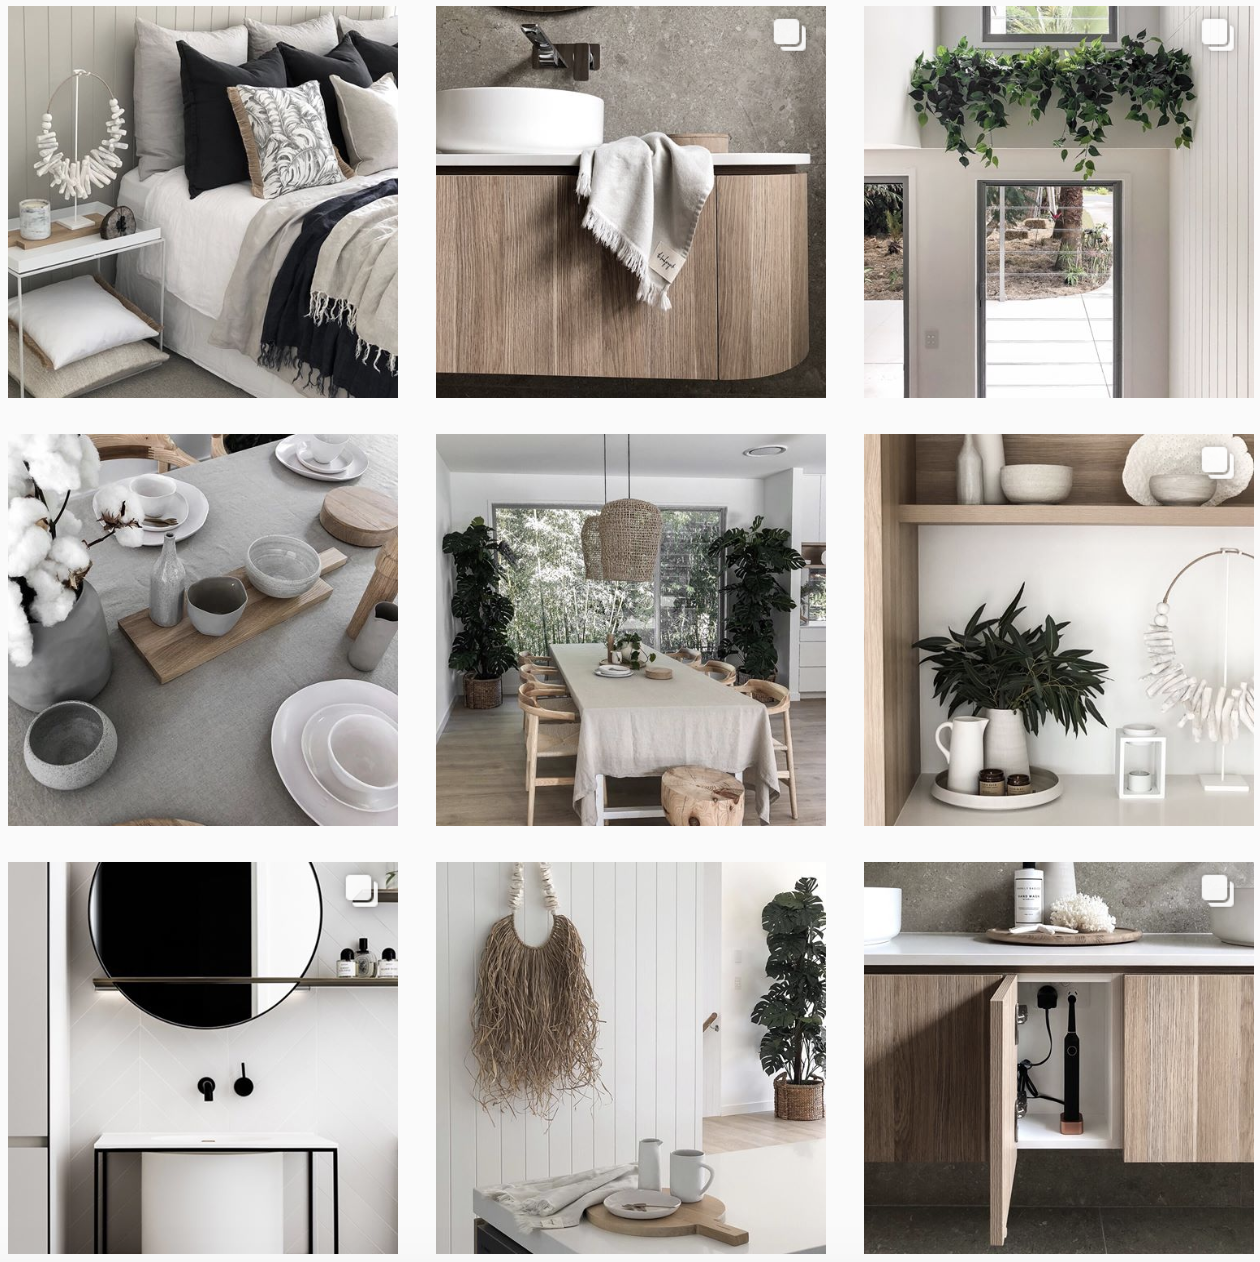 Zephyr and Stone neutral interiors